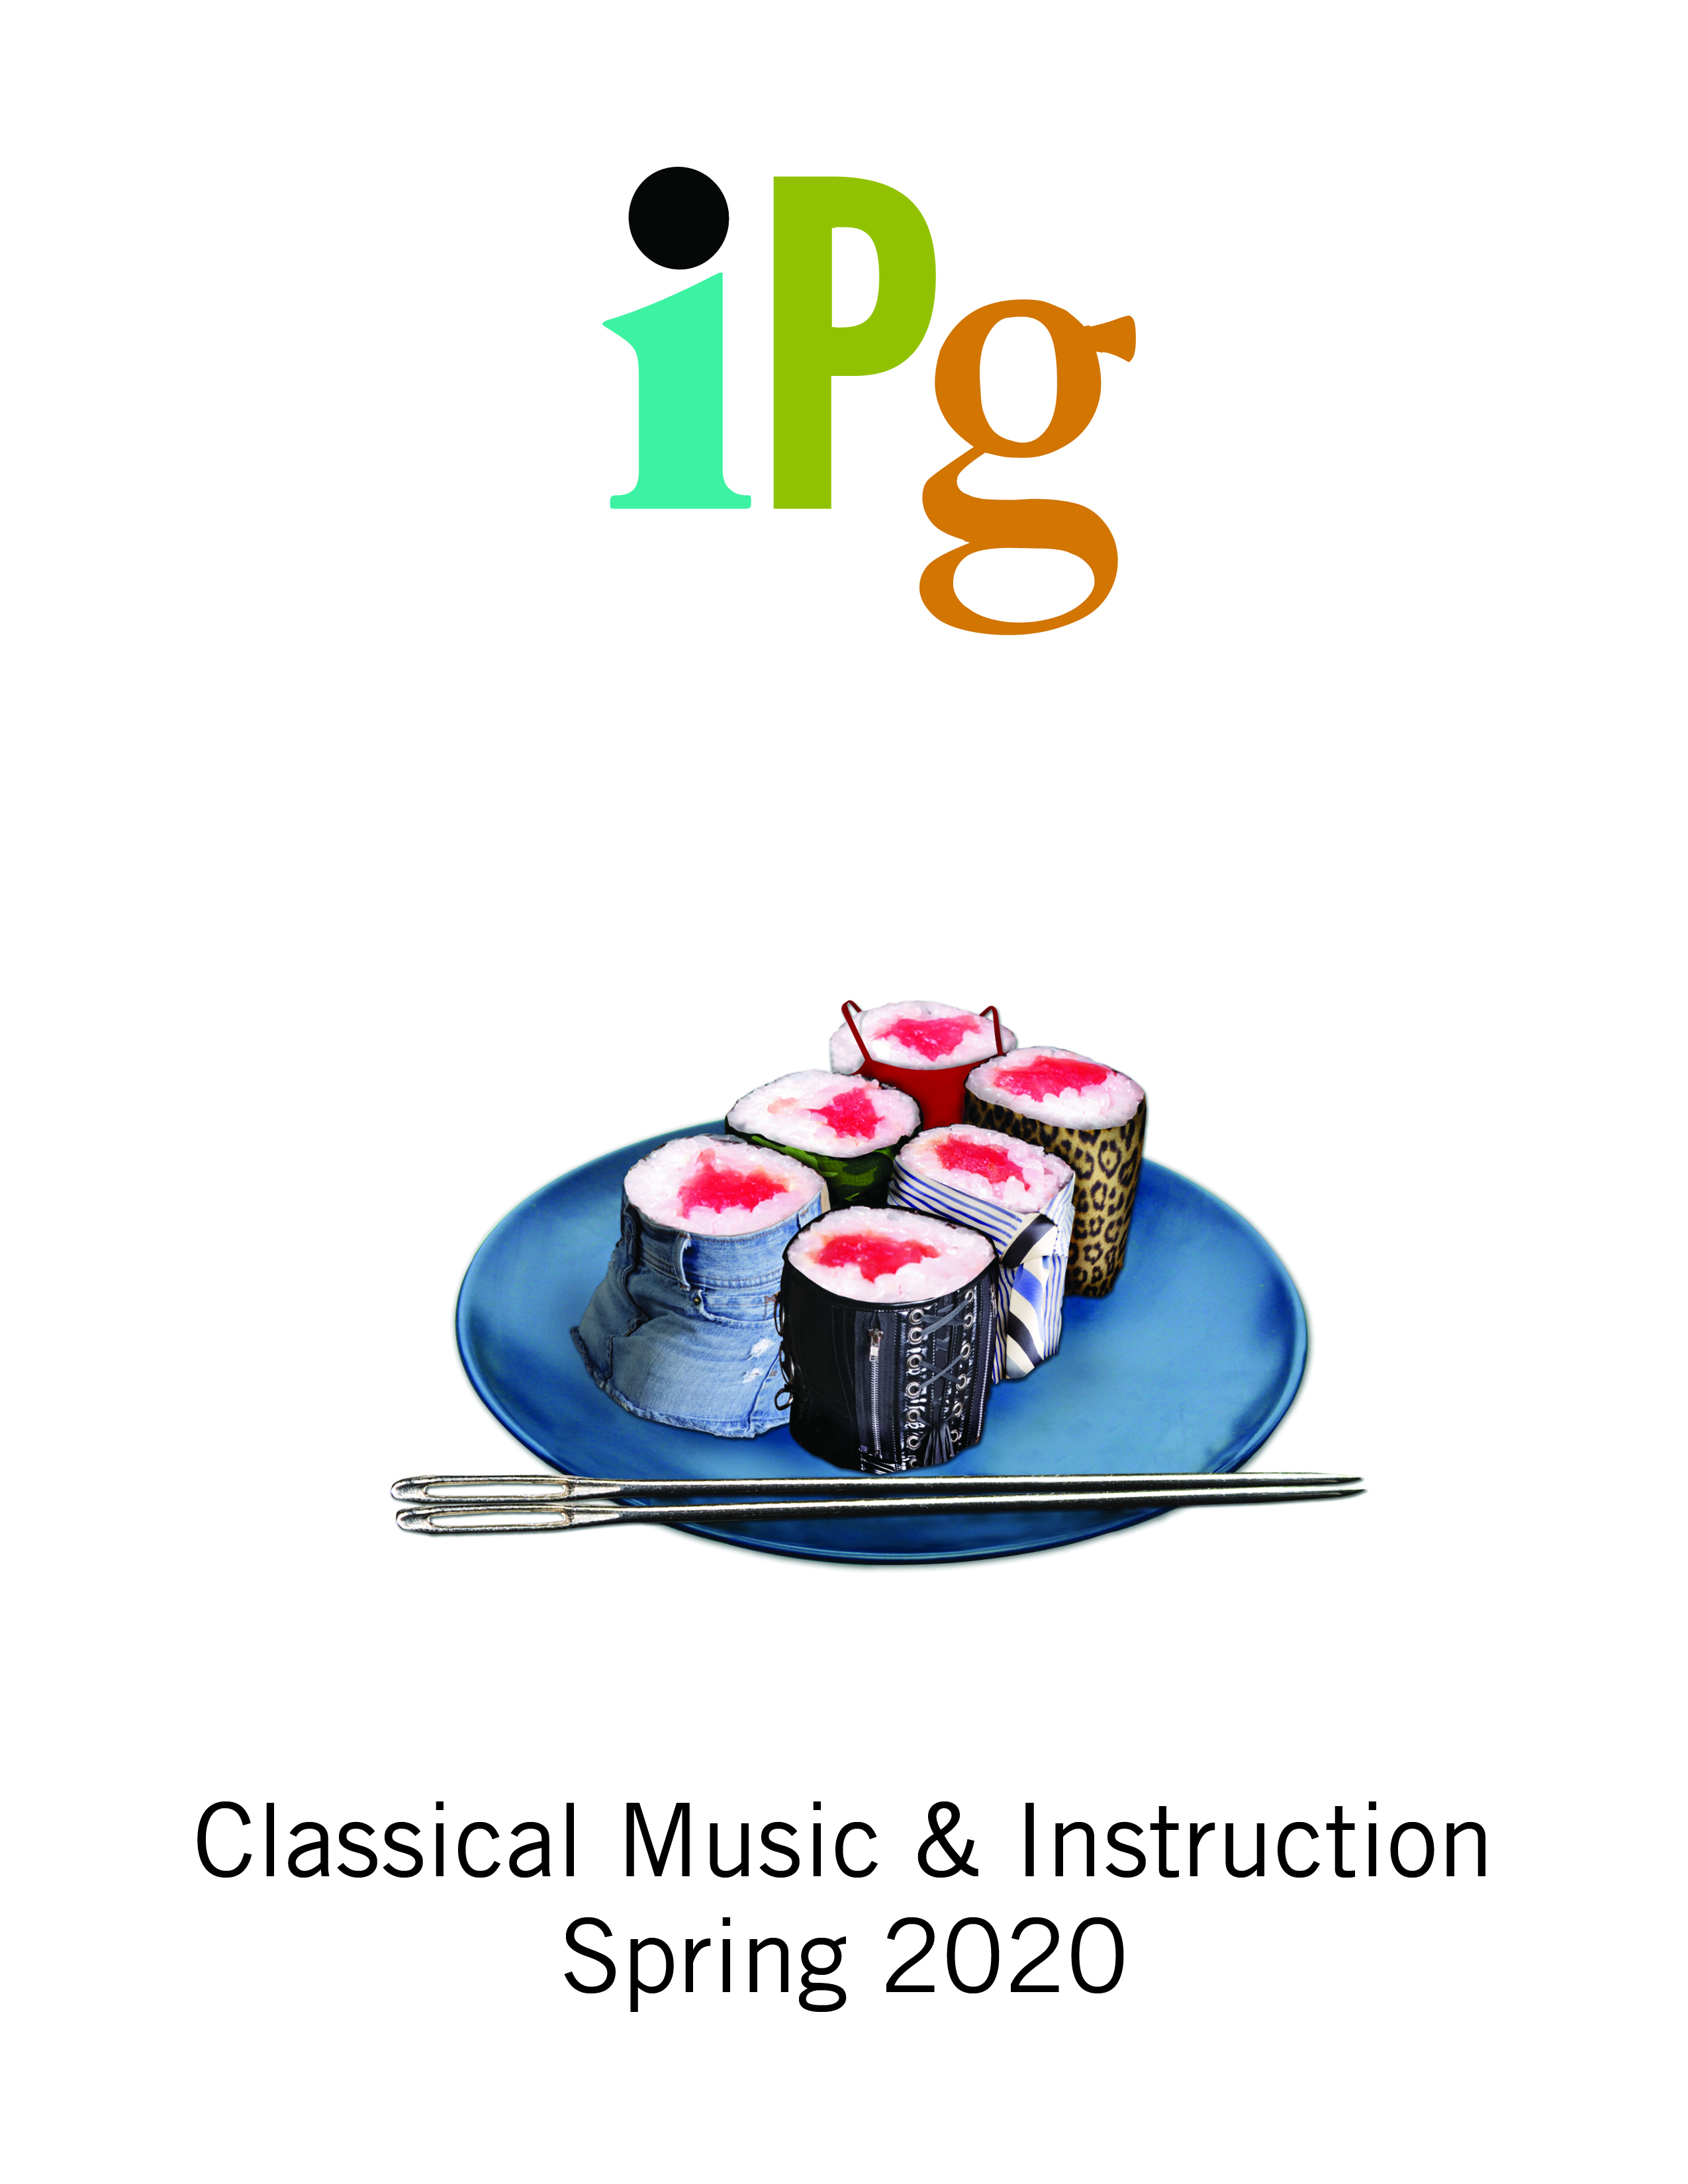 Classical Music & Instruction